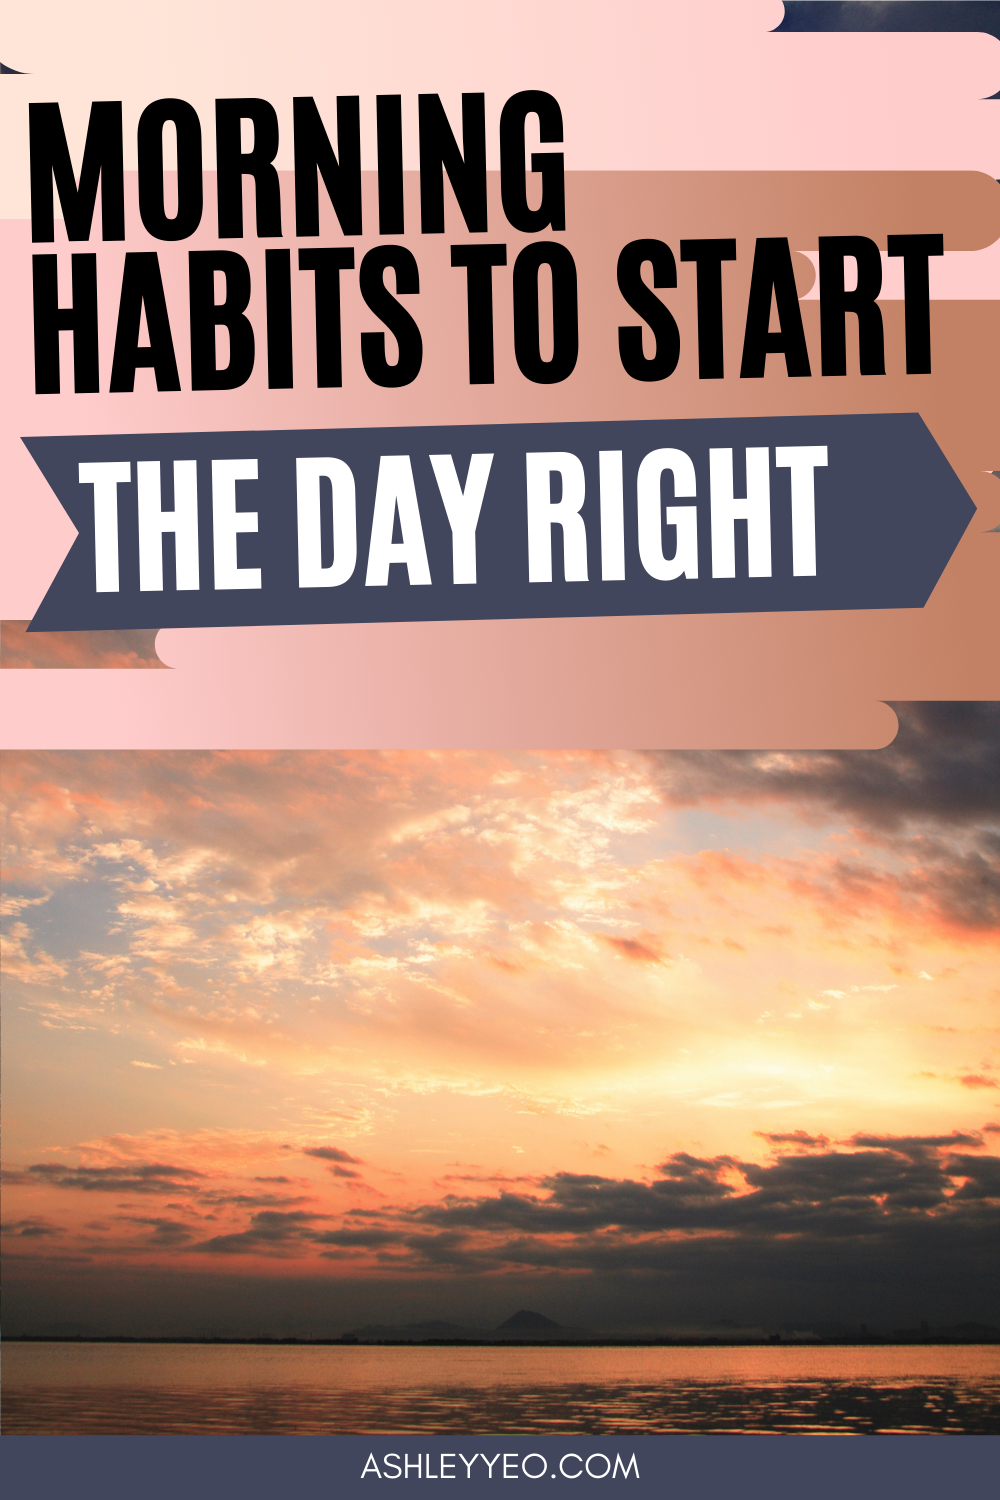 Morning Habits to Start the Day Right